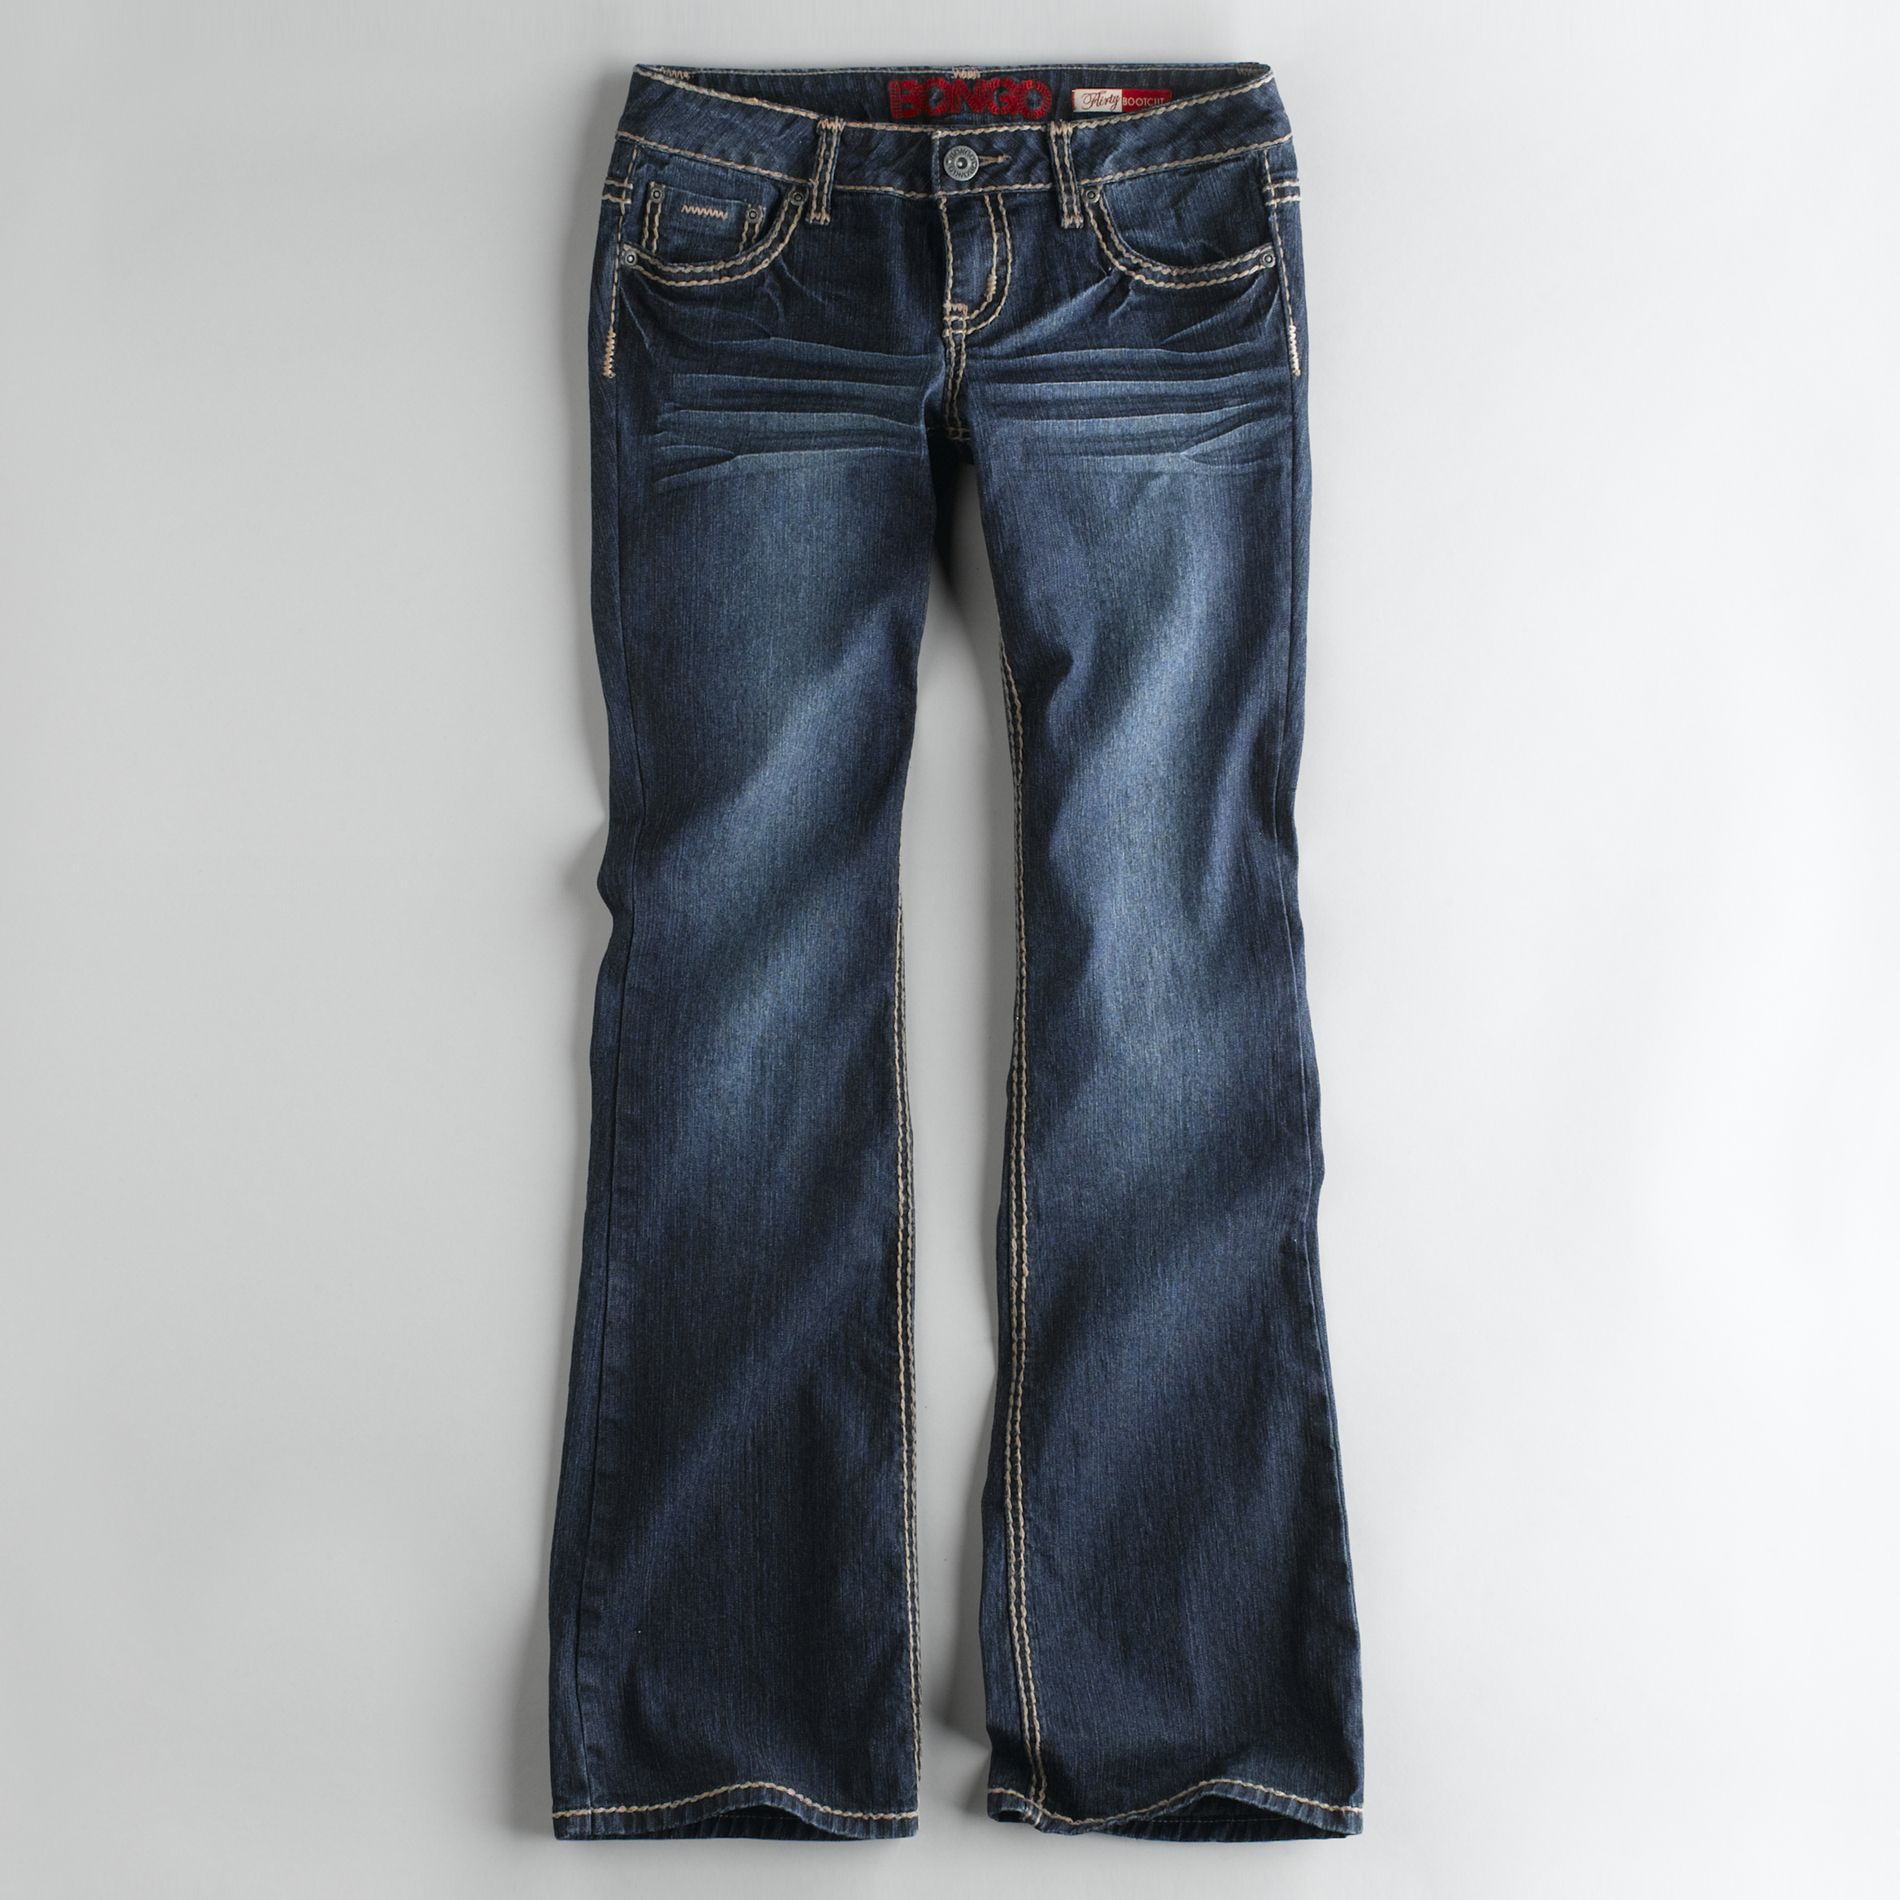 Bongo Juniors Flirty Bootcut Jeans at Sears.com